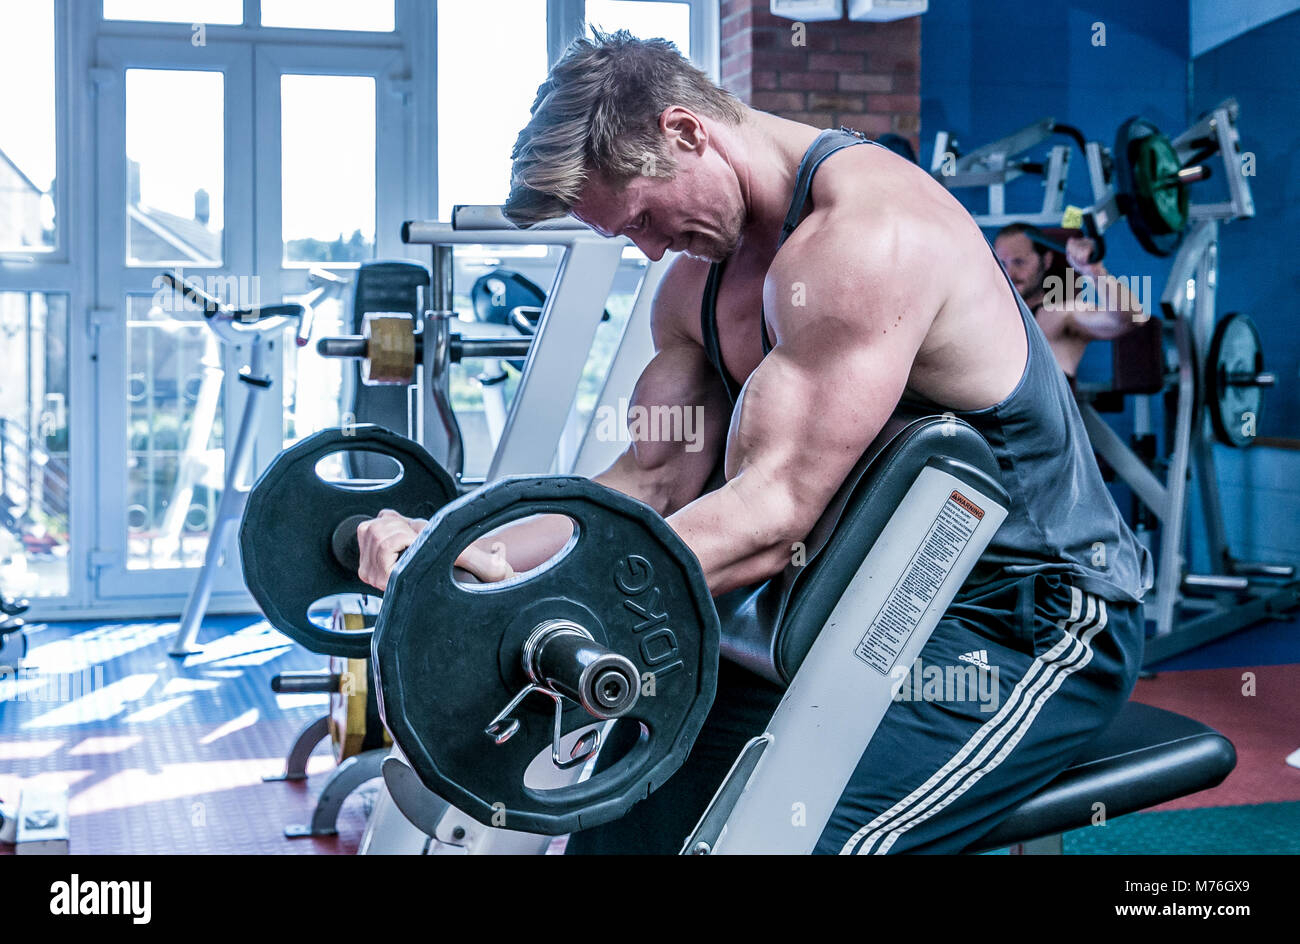 Muscular man working out with weights in the gym - Stock Image